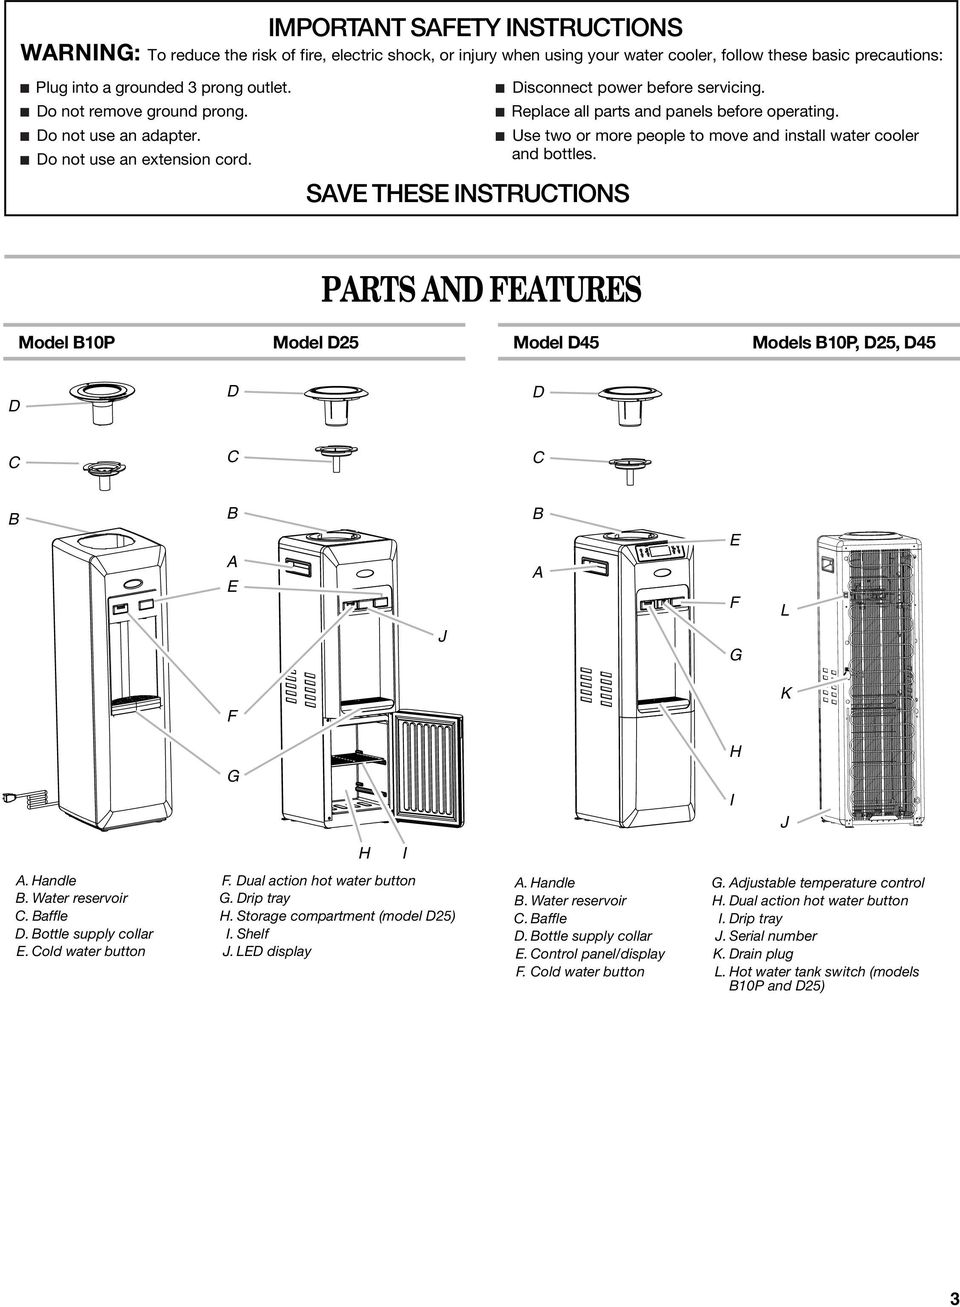 Use two or more people to move and install water cooler and bottles. PRTS ND FETURES Model 10P Model D25 Model D45 Models 10P, D25, D45 D D D E E F L J G K F H G I J H I. Handle. Water reservoir.